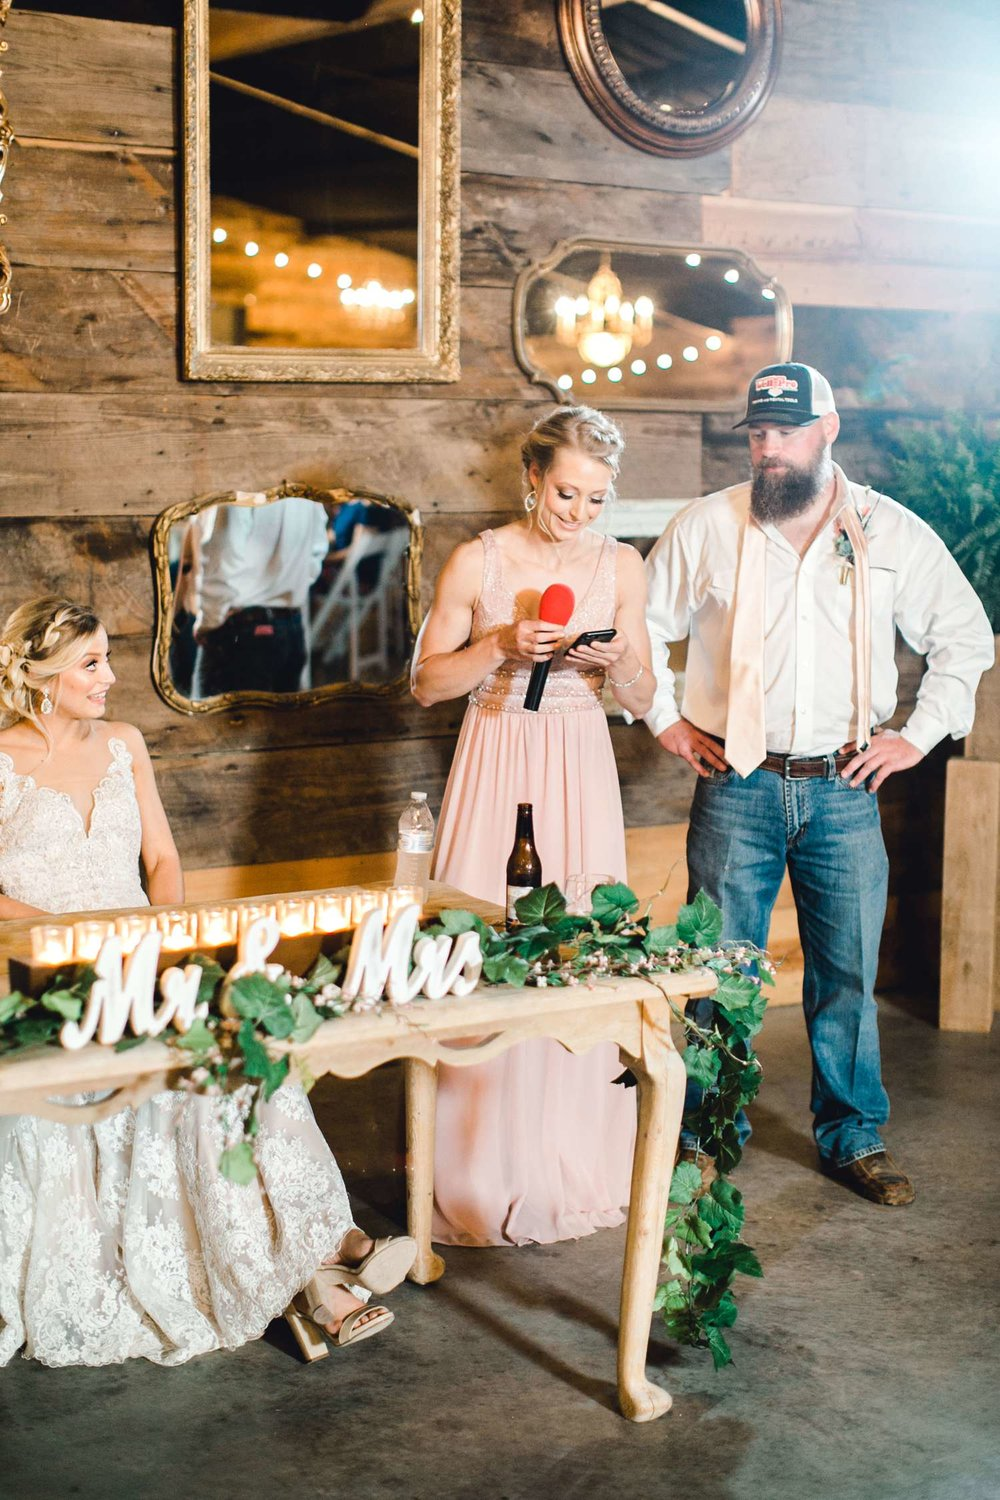 SARAH+TREVOR+BADGETT+SPARROW+CREEK+GRAHAM+TEXAS+ALLEEJ+WEDDINGS_0124.jpg